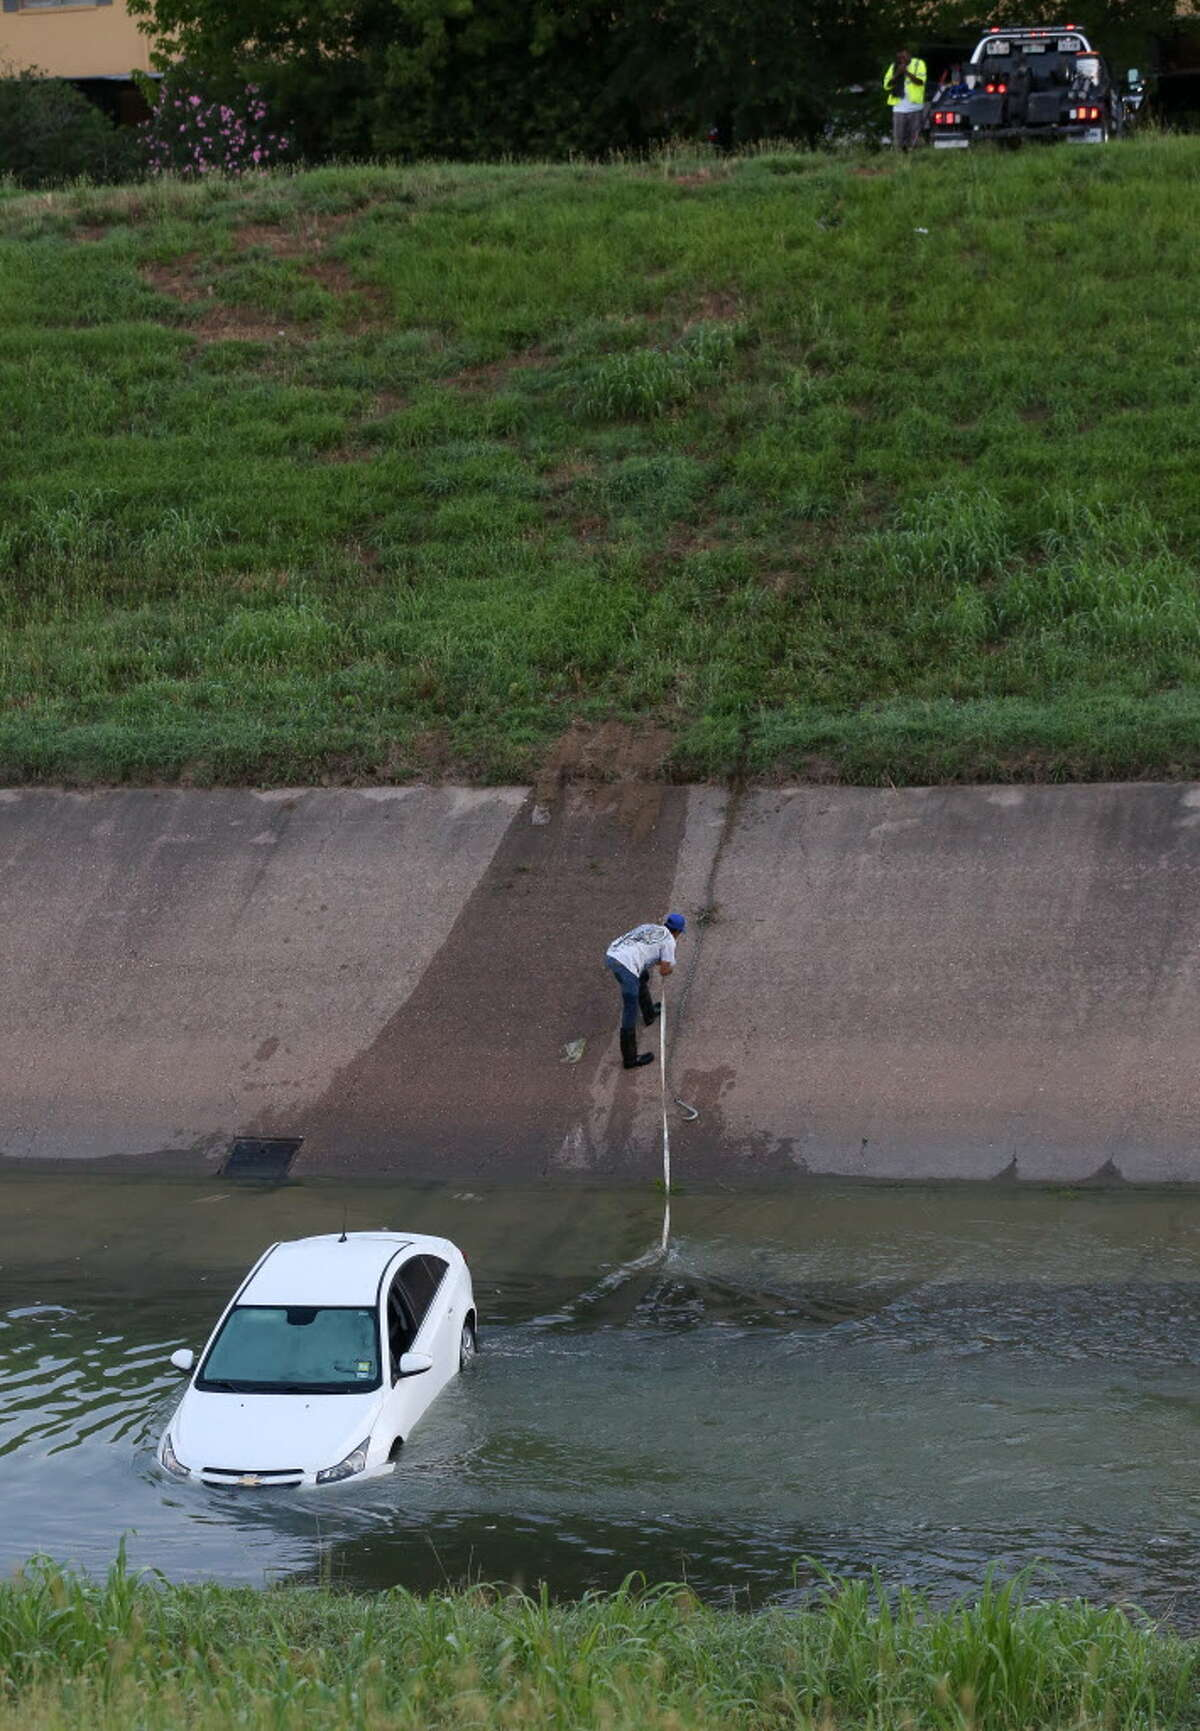 Wrecker driver Curtis Martin works to extract a stolen vehicle out of the Brays Bayou near the intersection of Braes Bayou Drive and South Braeswood Boulevard Friday, June 8, 2018, in Houston.